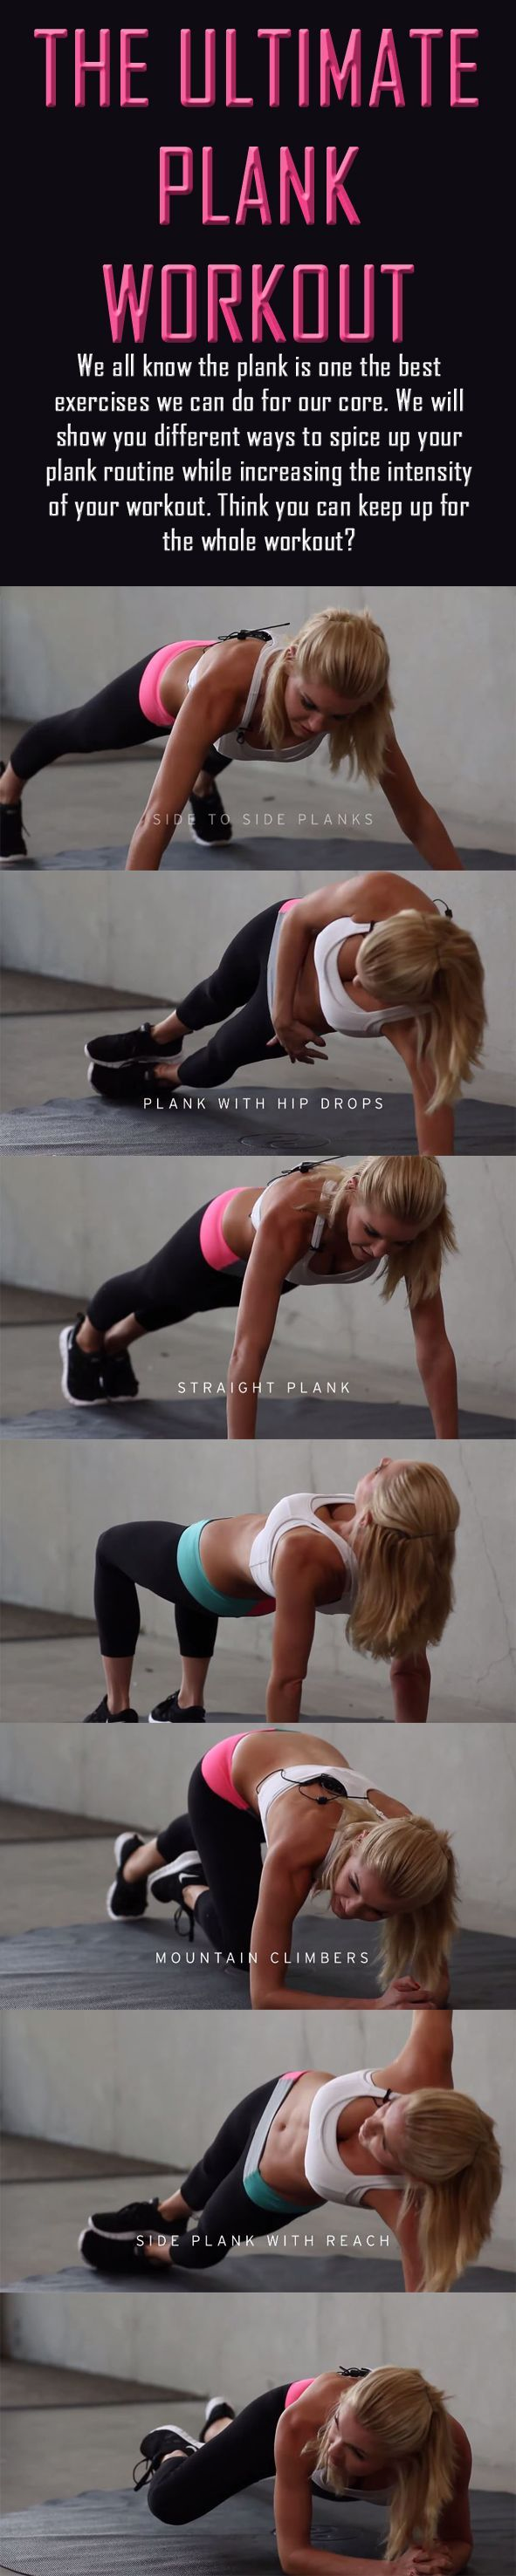 The ultimate plank workout. Give your core the best possible workout with this variation on the traditional plank..but something new: A new breakthrough 15 minute Workout App to guide you with Day-by-Day diets and fitness workouts that will transform your body into New You: strong, slim and fit!